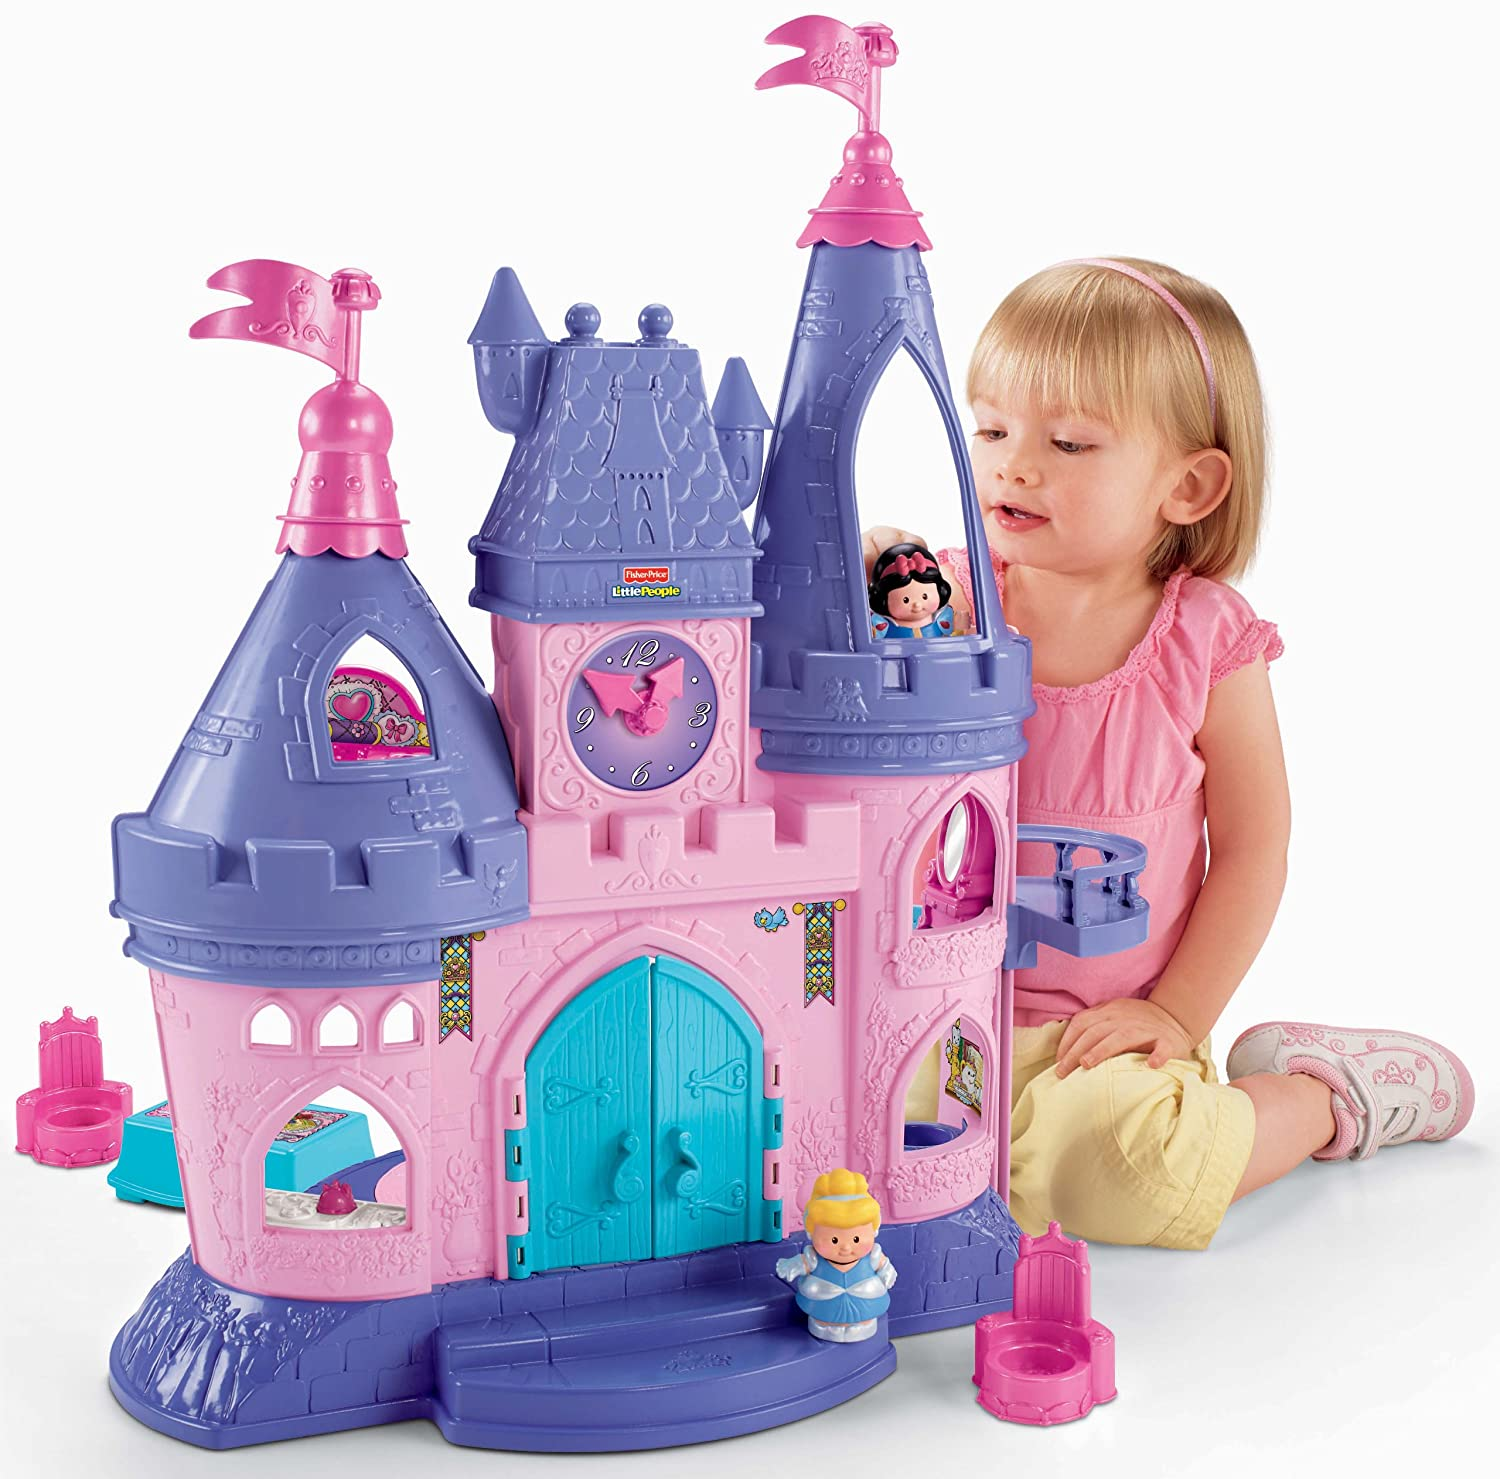 Toys For Girls Age 4 5 : Christmas gifts hot toys for toddler girls ages